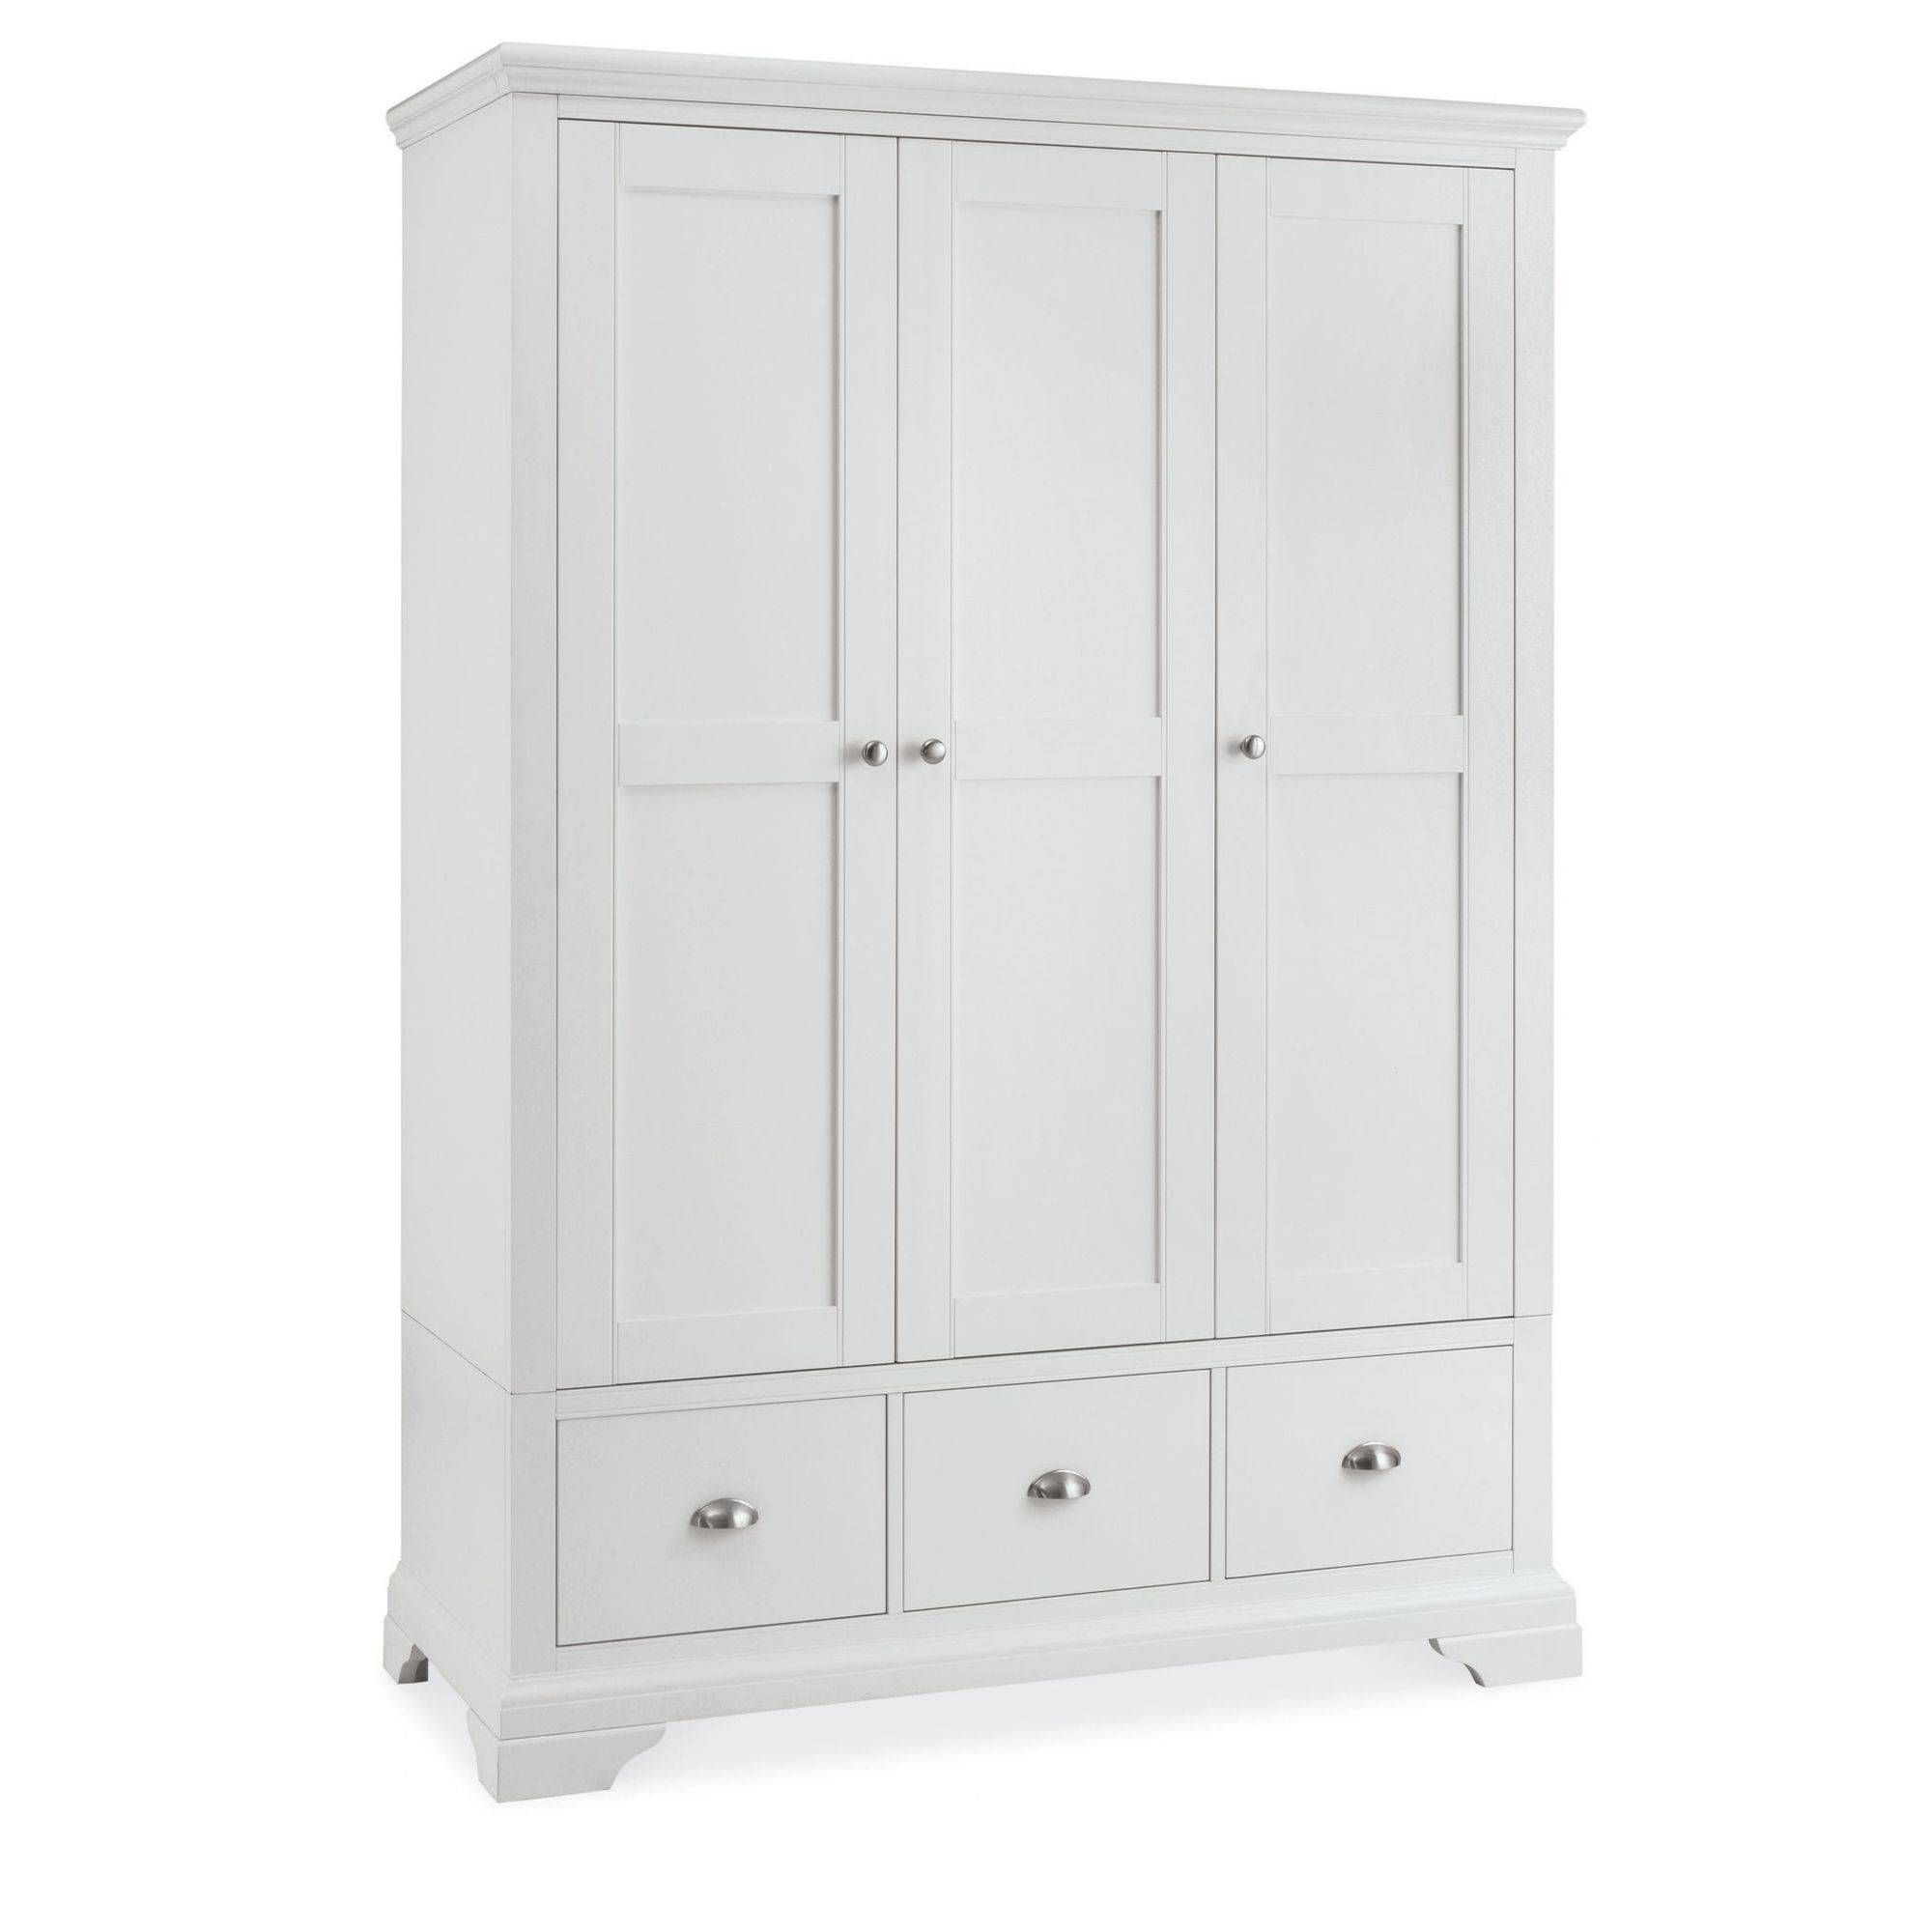 Cookes Collection Camden White Triple Wardrobe   Bedding Furniture Inside Large White Wardrobes (Photo 13 of 15)